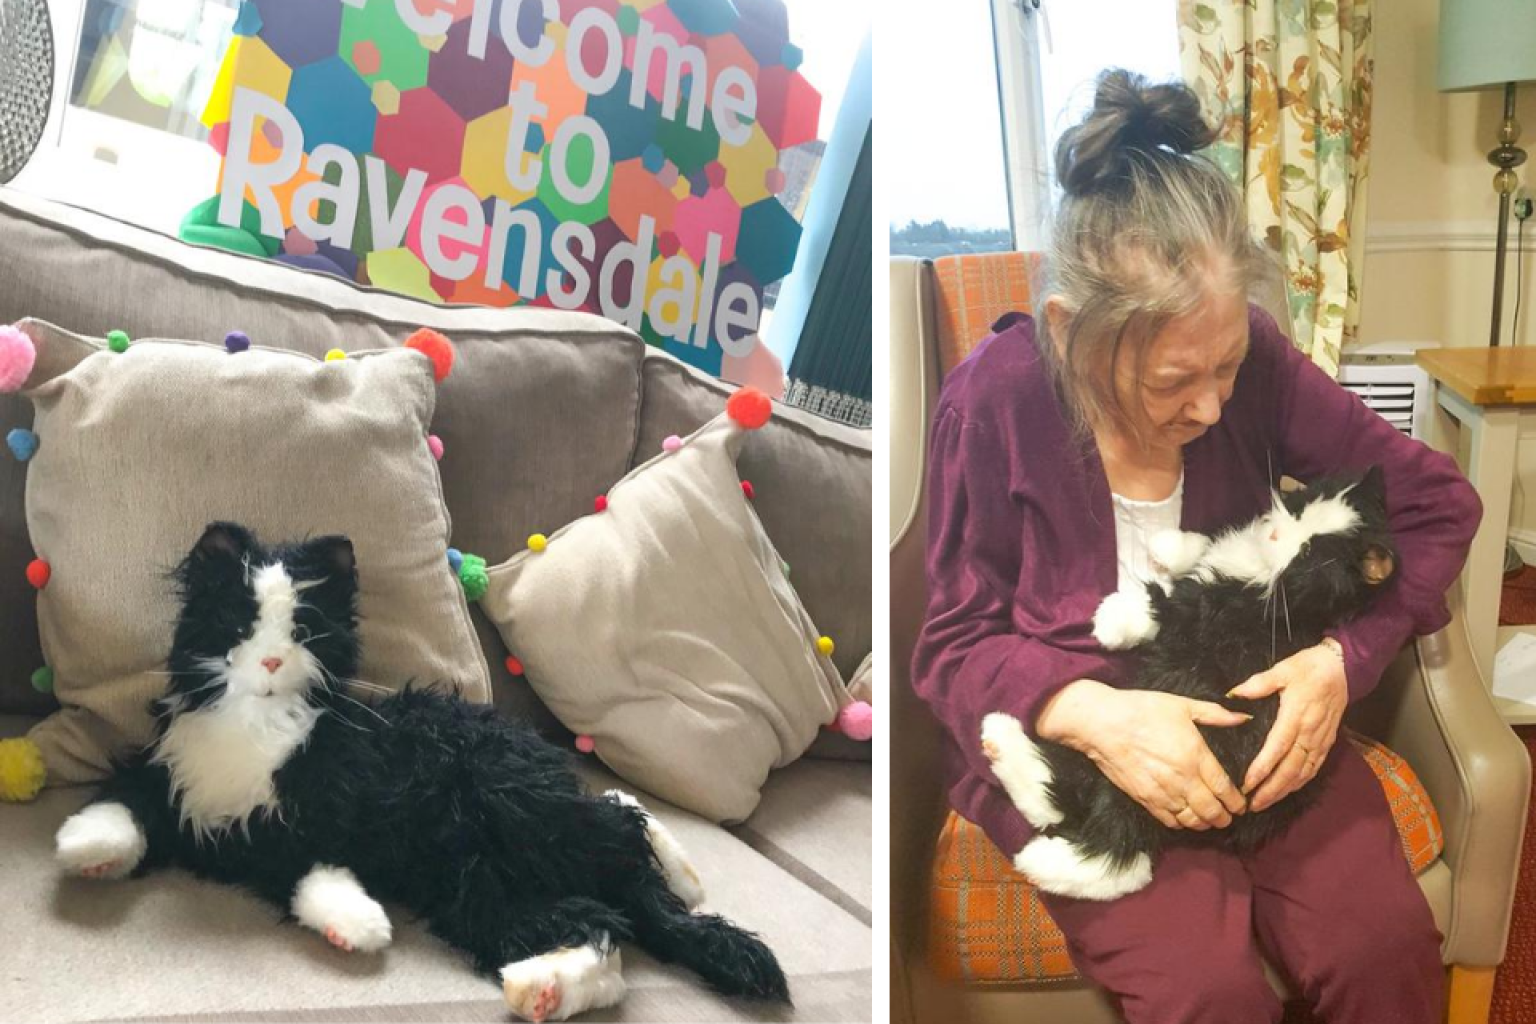 ravensdale dementia cat international cat day